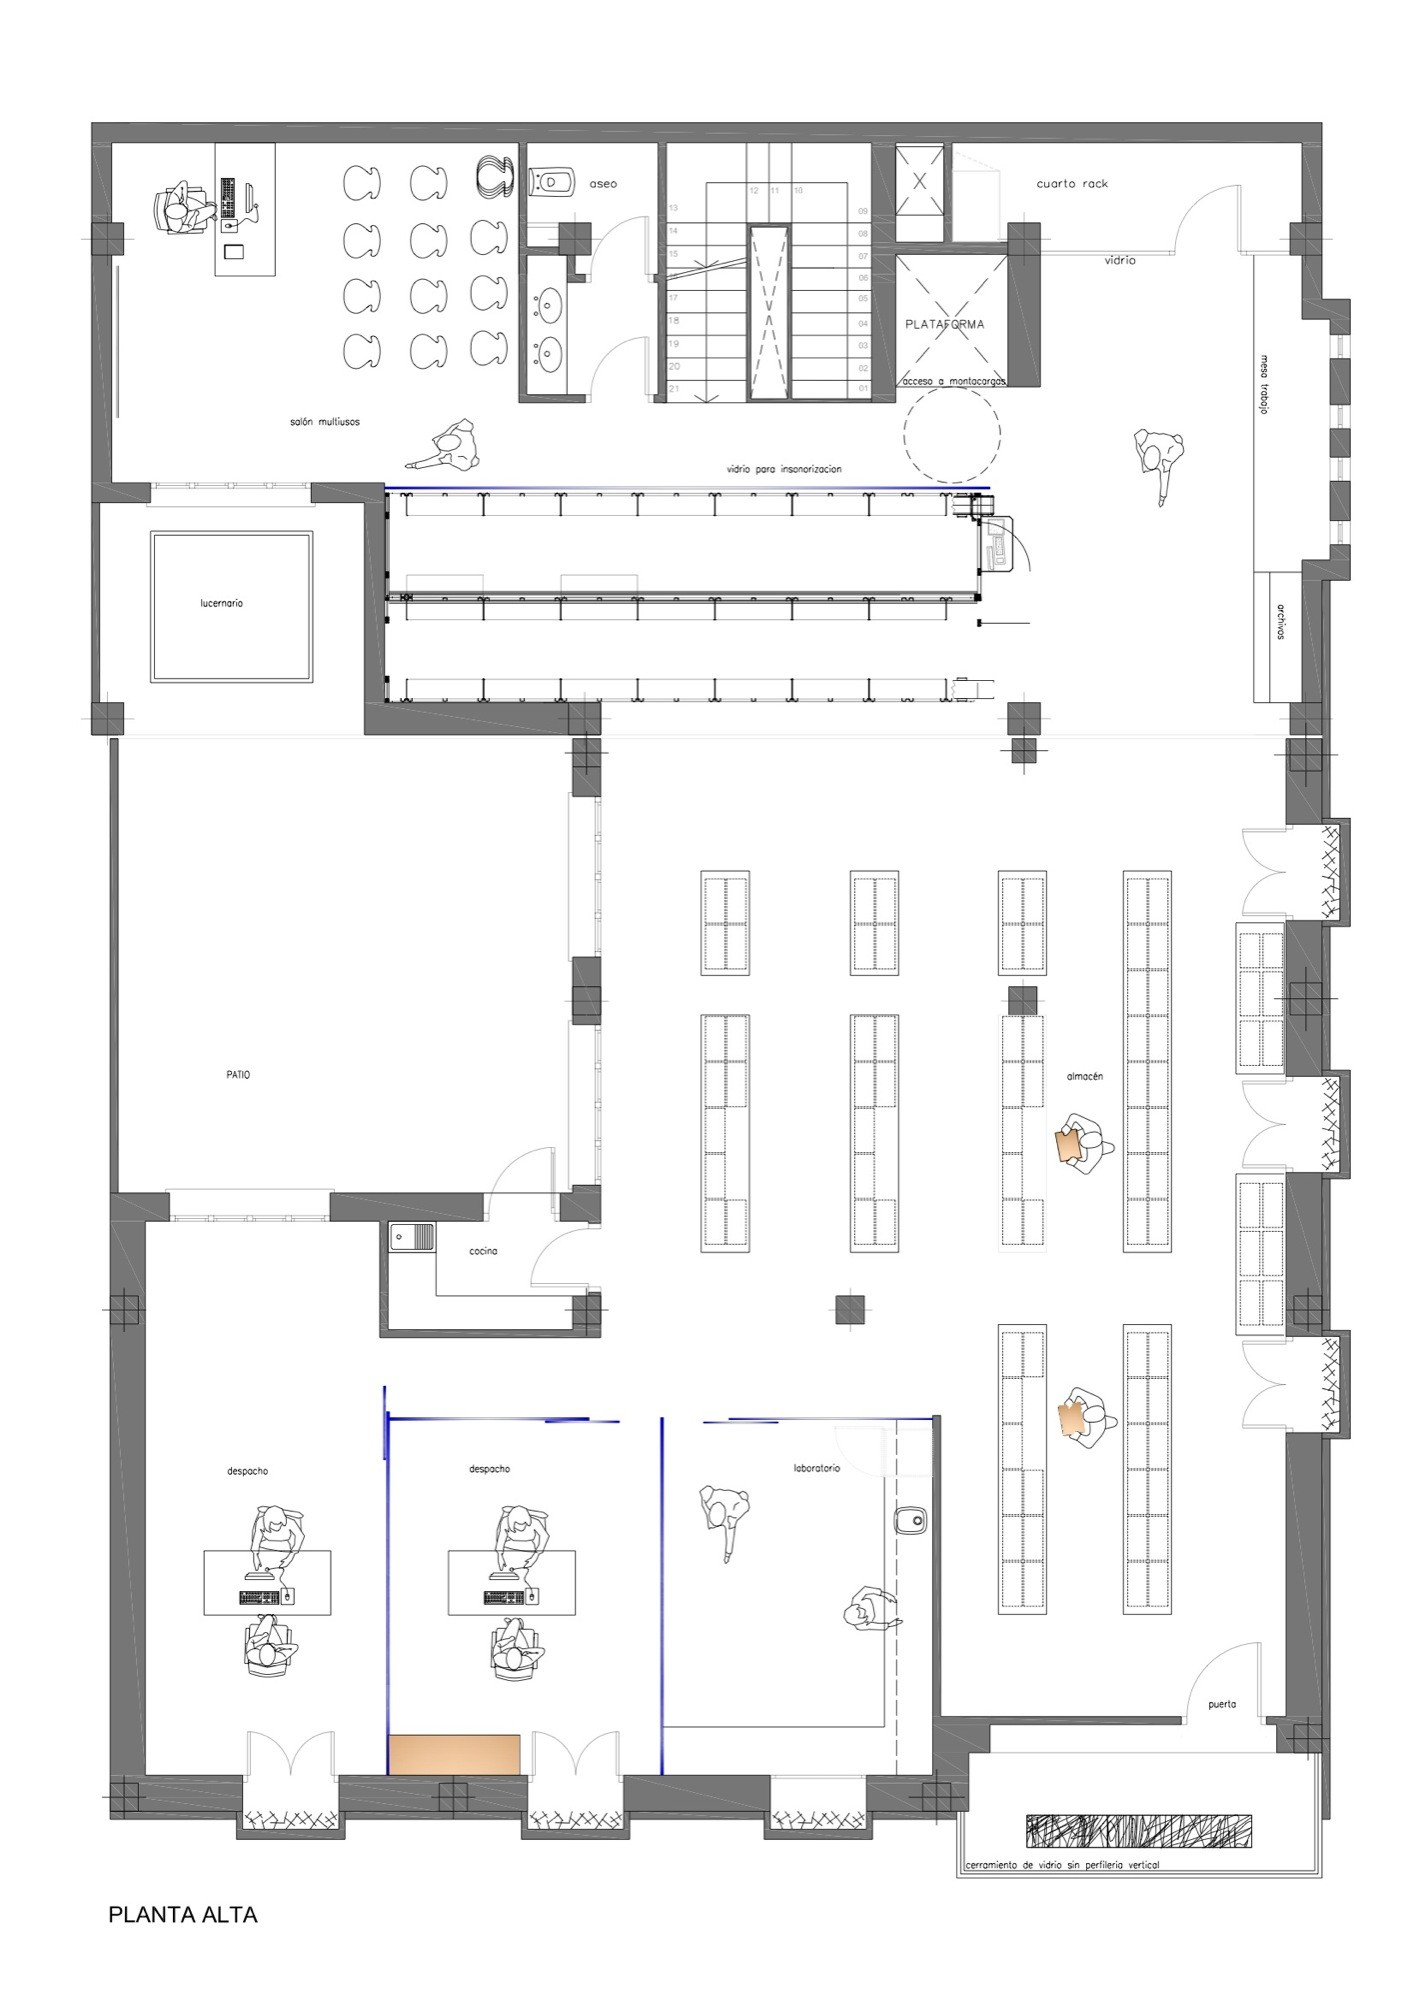 File Mad scientist bw besides New logo and identity for mit media lab by pentagram together with Kimbell Art Museum moreover 5015817428ba0d02f000161c Caparros And Reina Pharmacy Mobil M Floor Plan in addition Birch reduction. on laboratory building